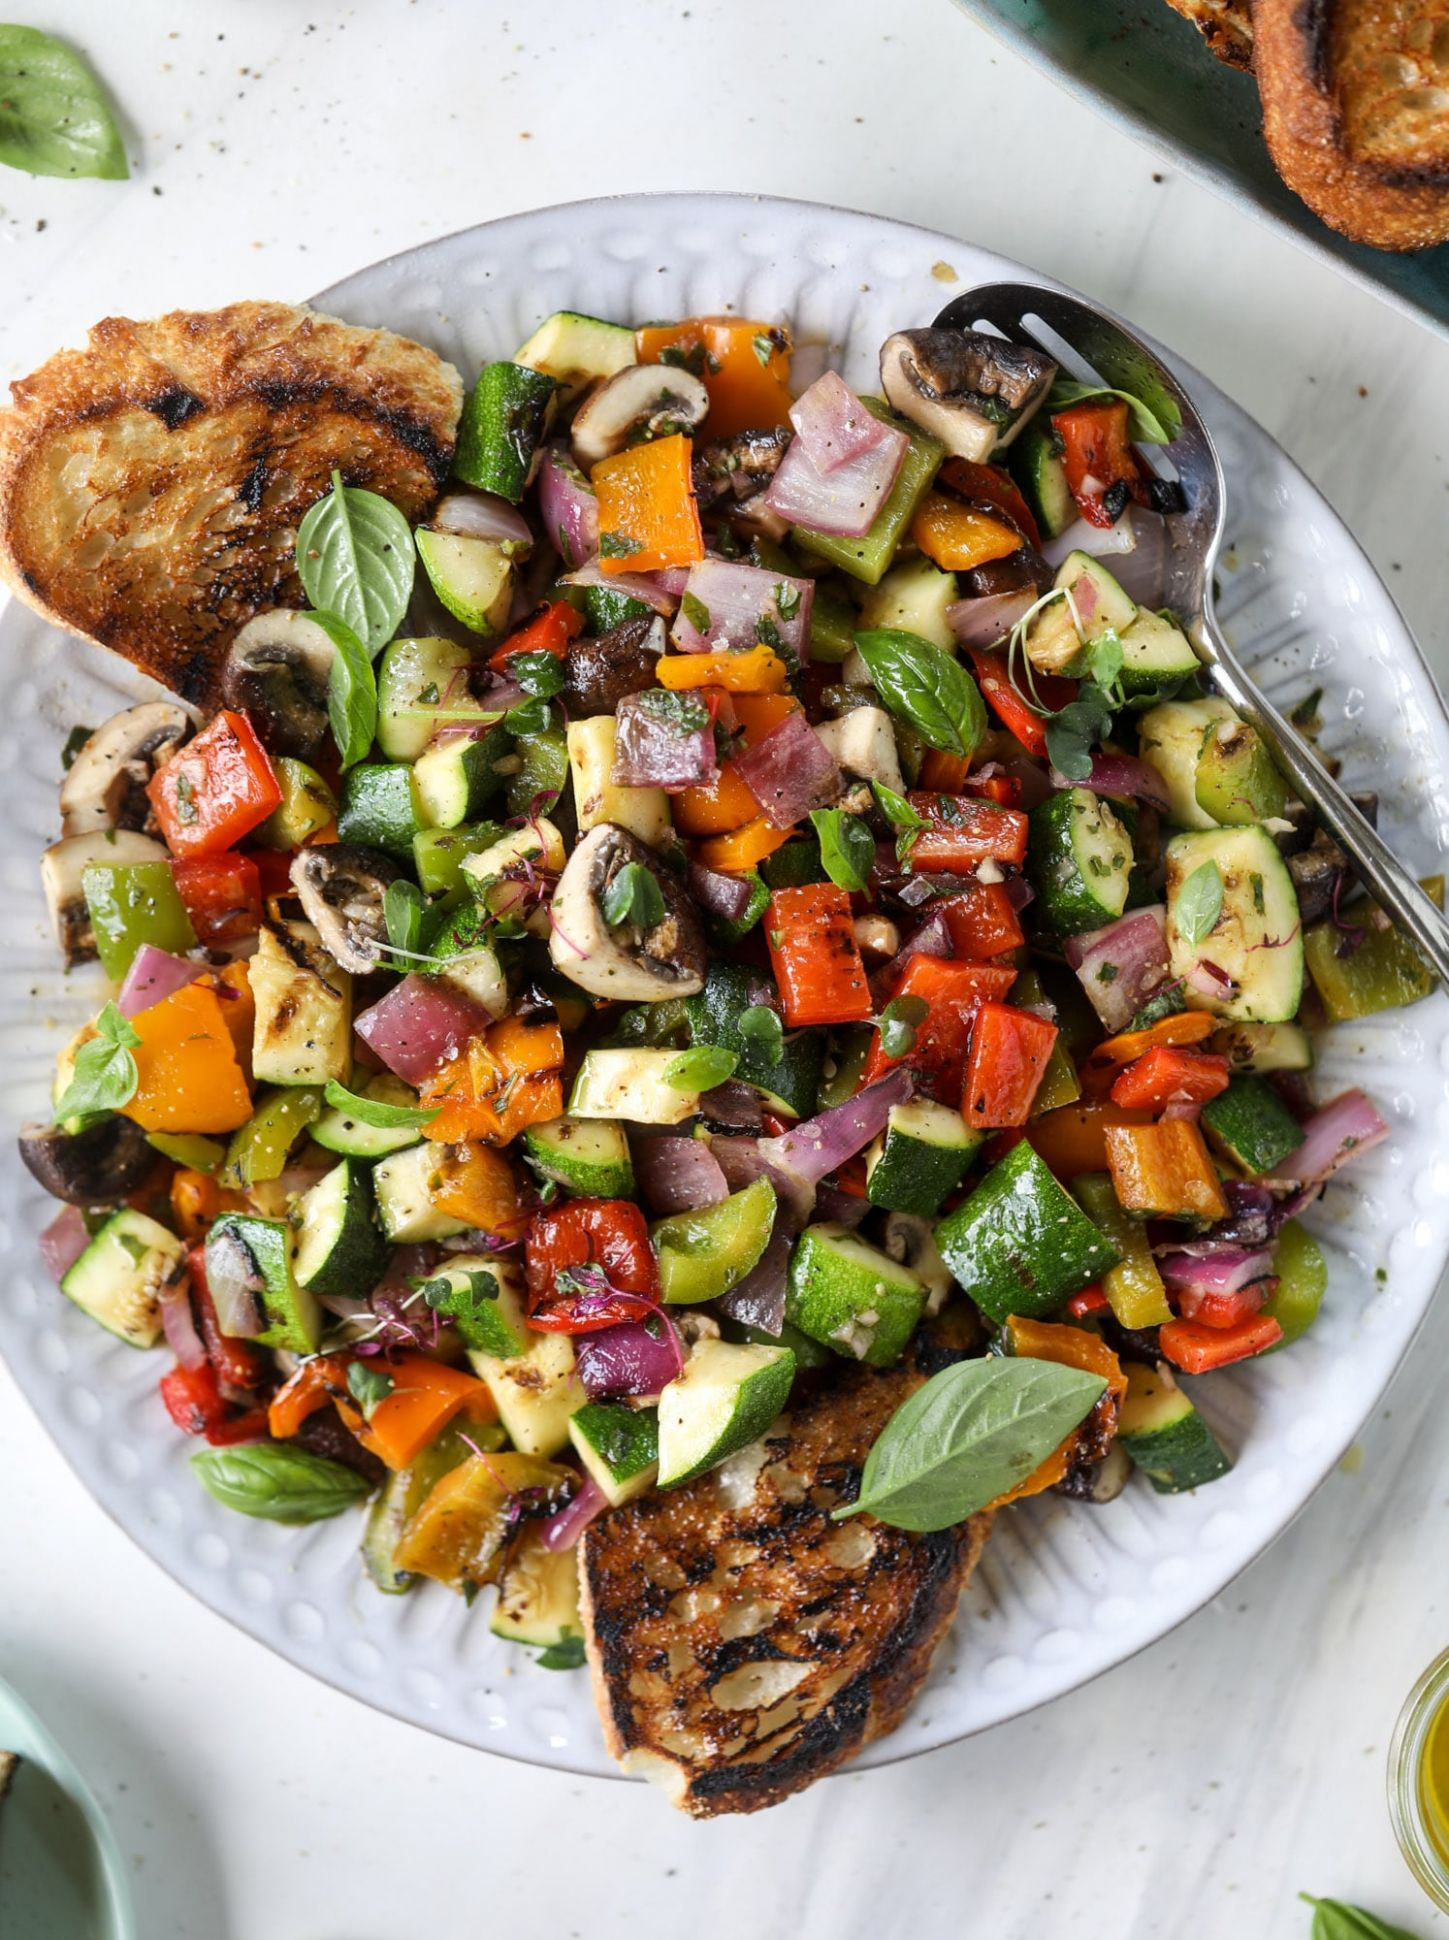 Grilled Chopped Veggies with Garlic Toast - Vegetarian Recipes On The Grill